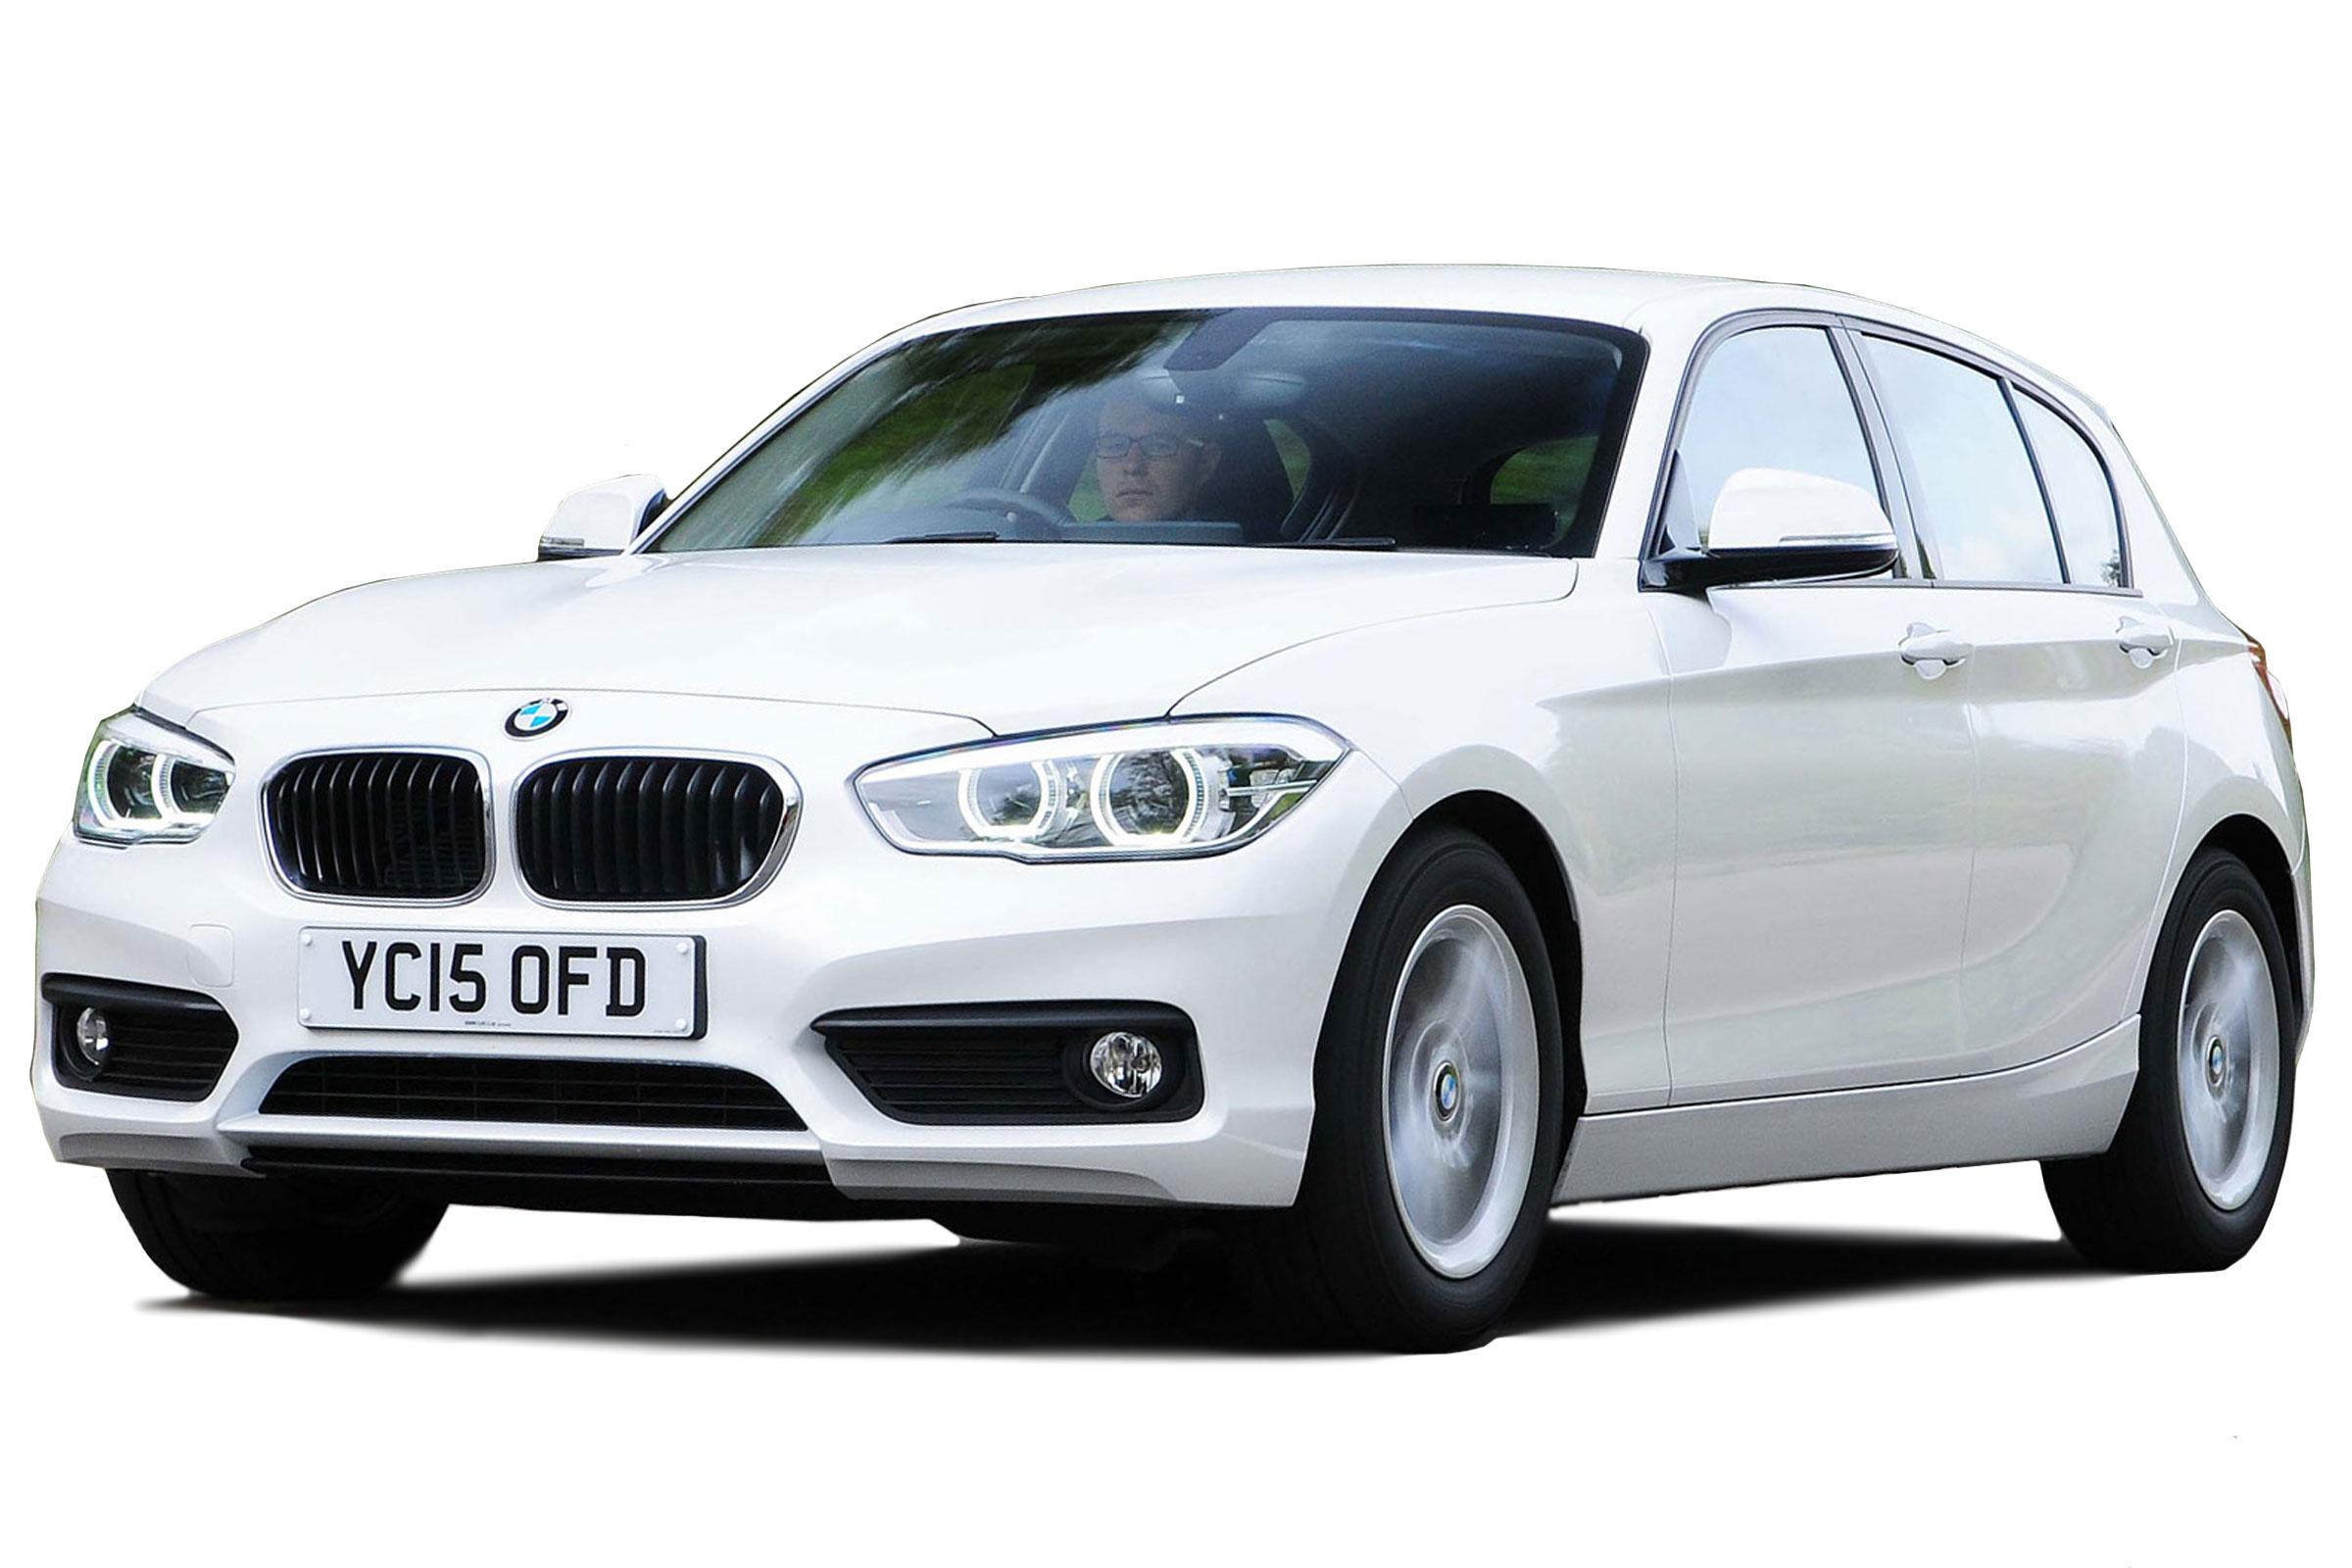 Bmw 1 Series Hatchback 2011 2019 Owner Reviews Mpg Problems Reliability Carbuyer